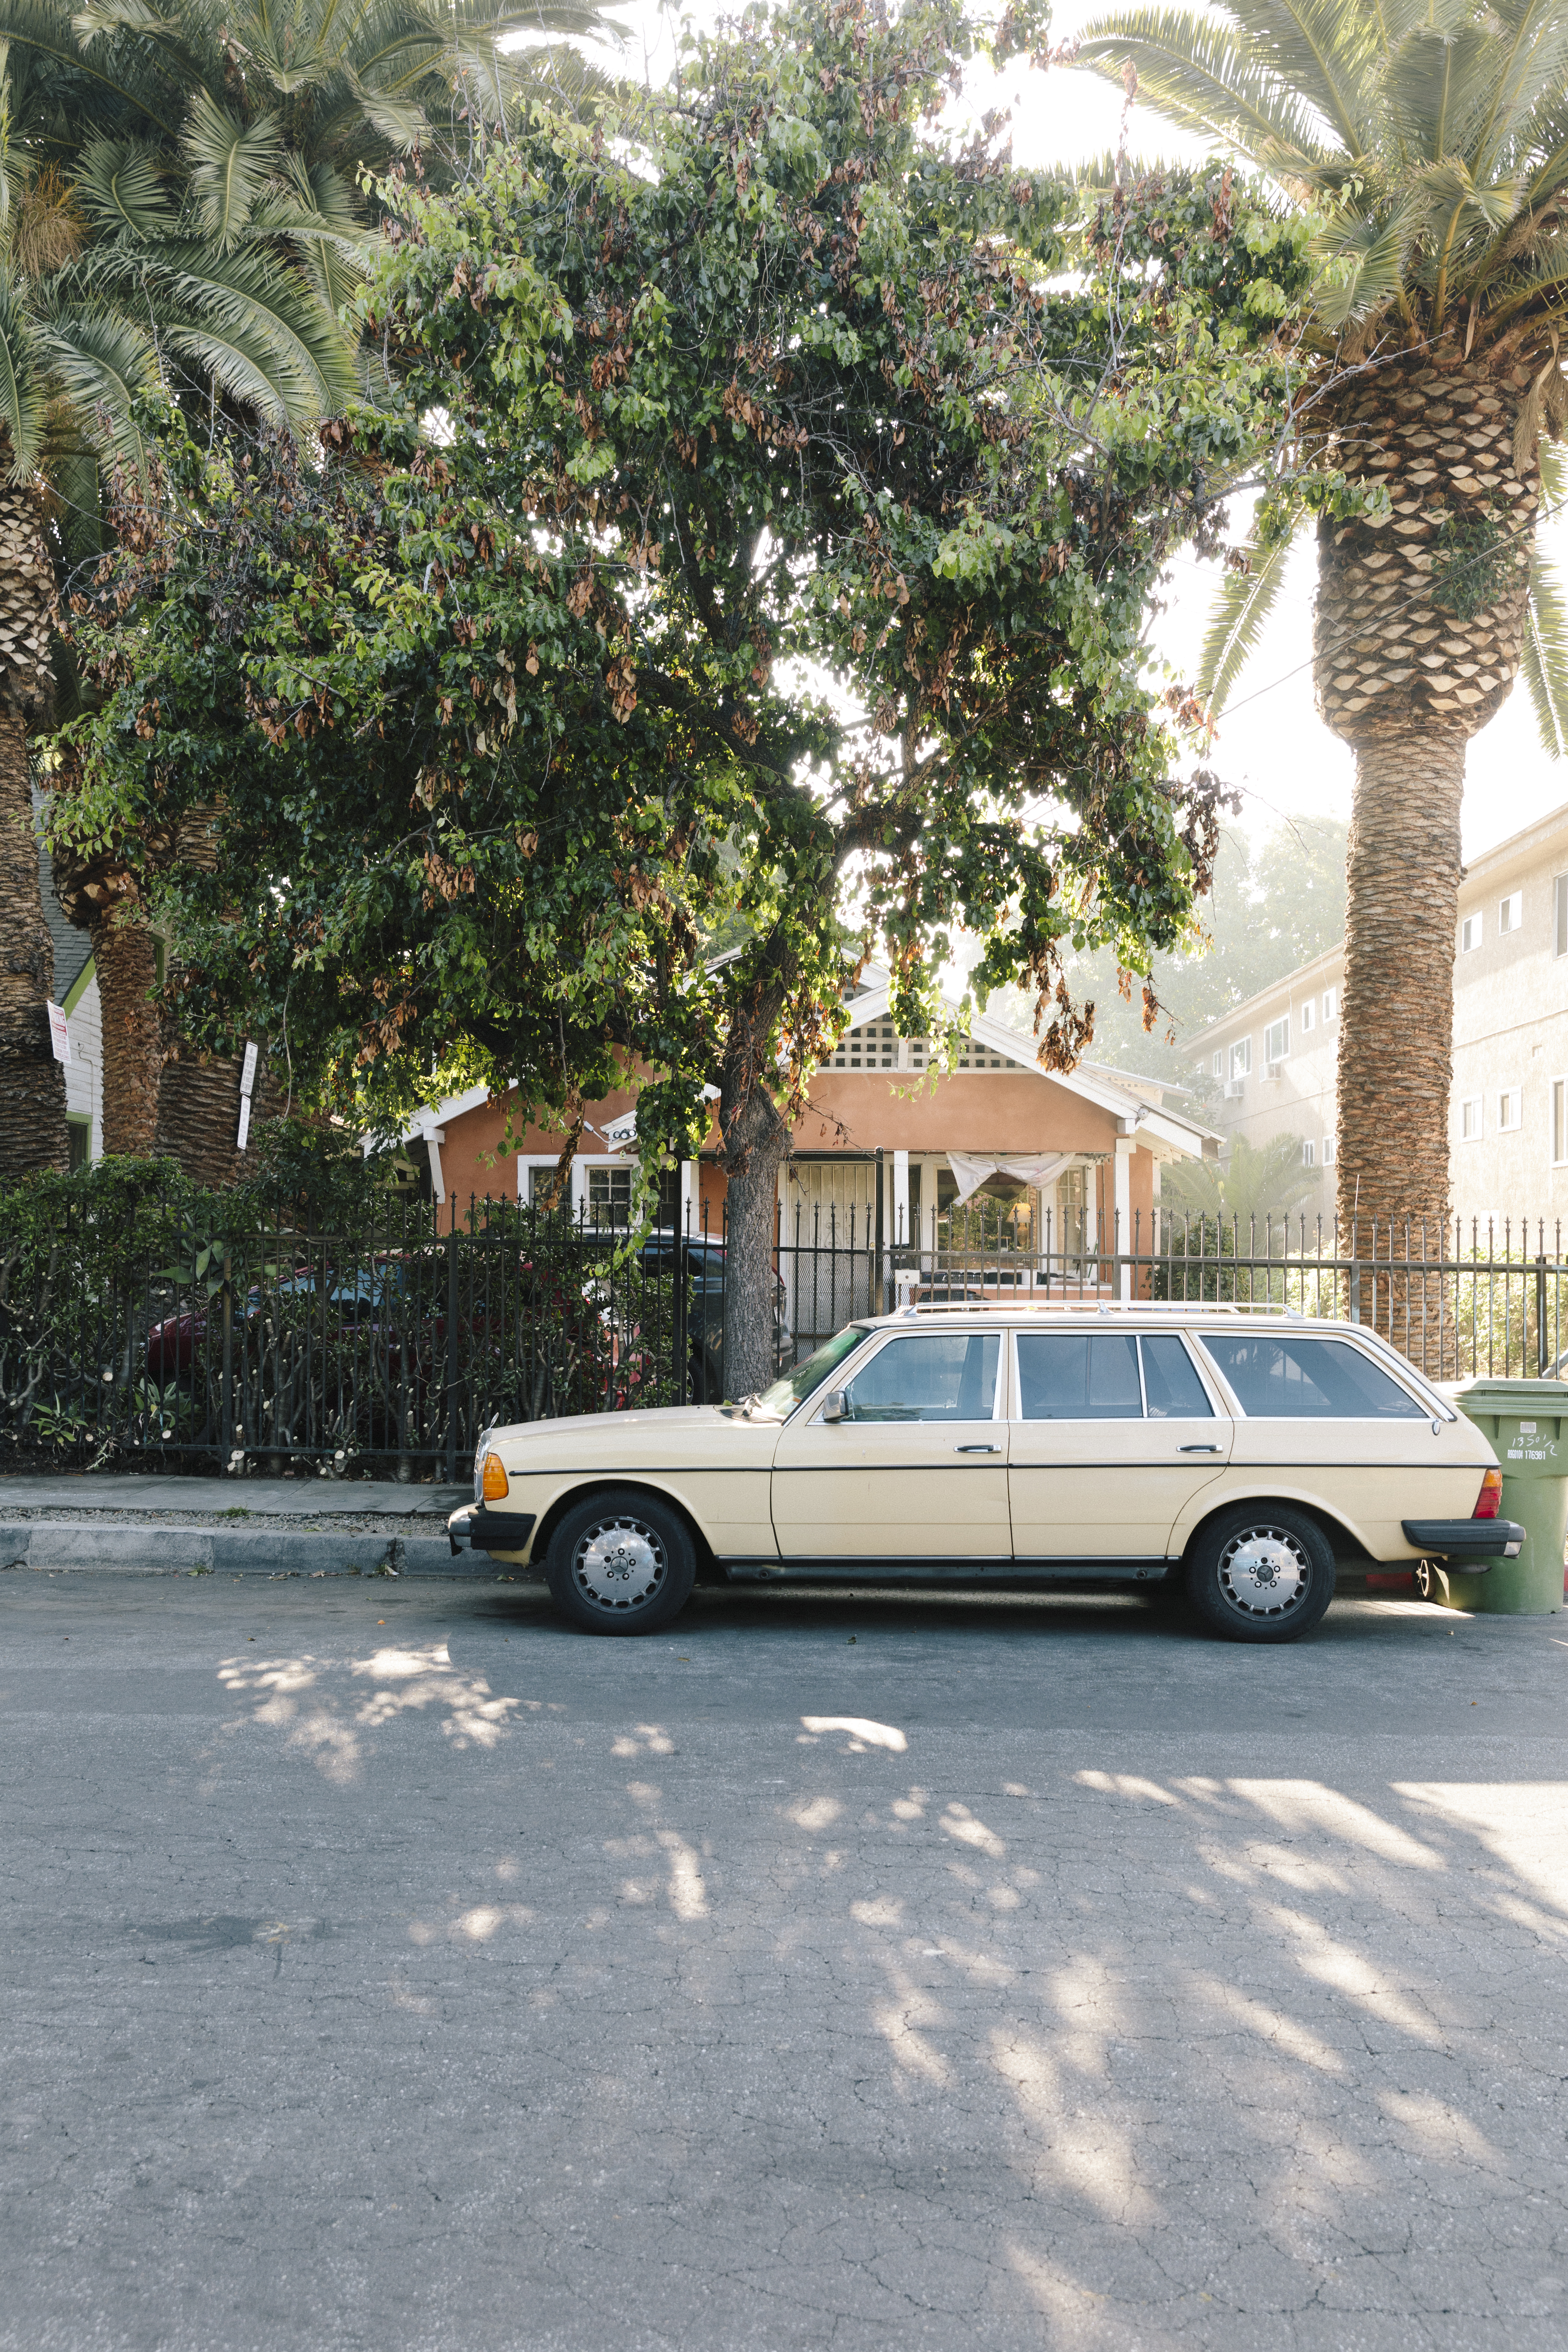 An old station wagon parked in front of an orange-colored house partly obscured by a tree in the front yard